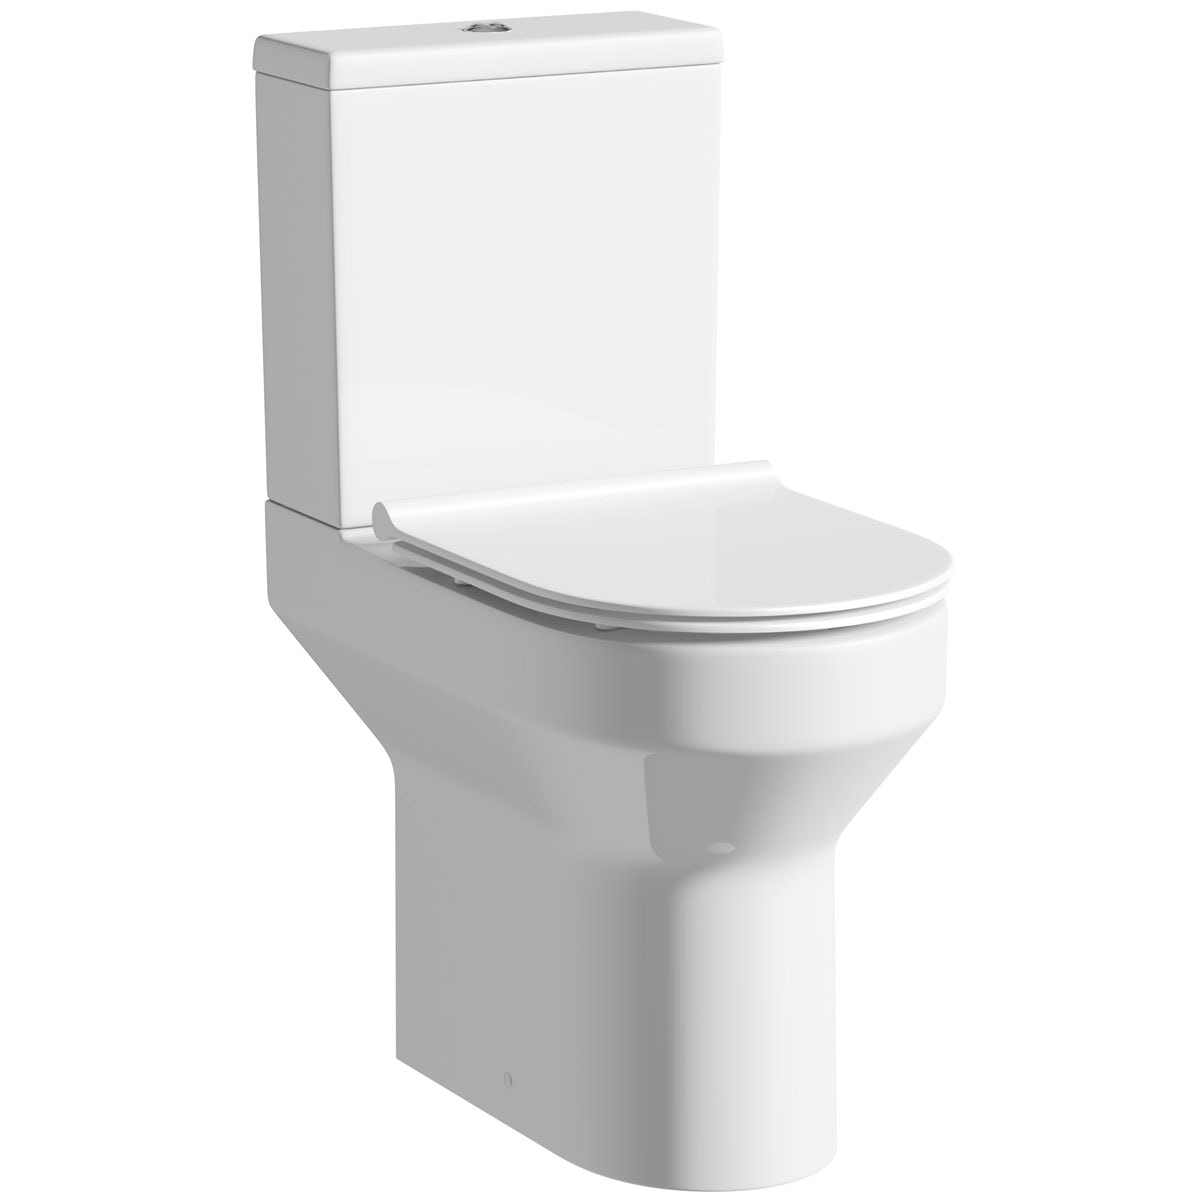 Oakley comfort height close coupled toilet with soft close slim seat